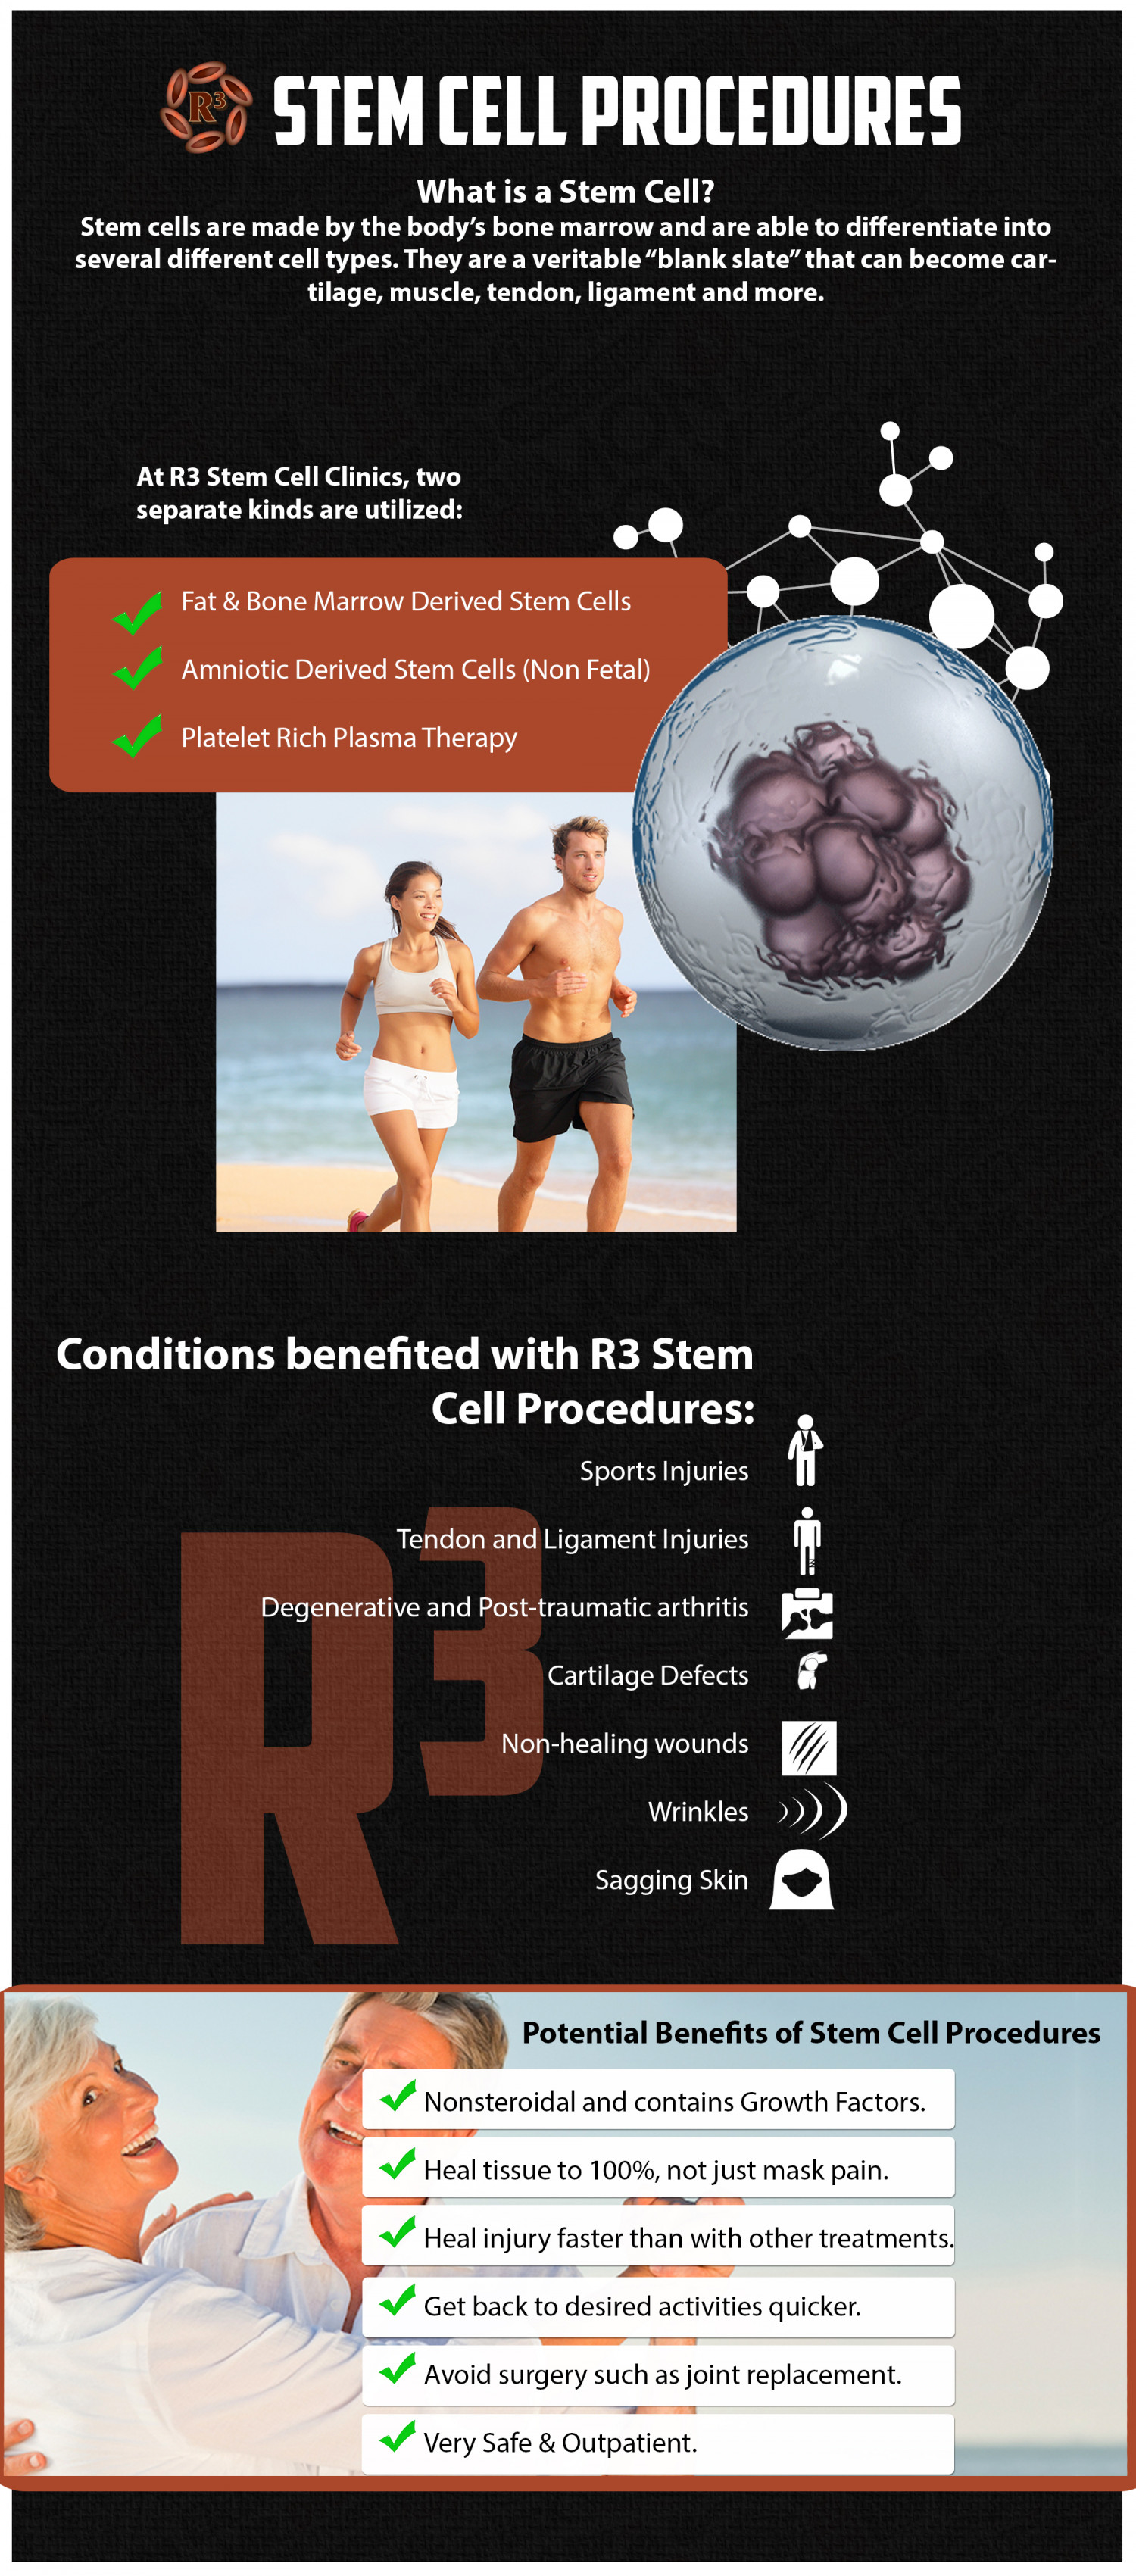 R3 Stem Cell Procedures Infographic